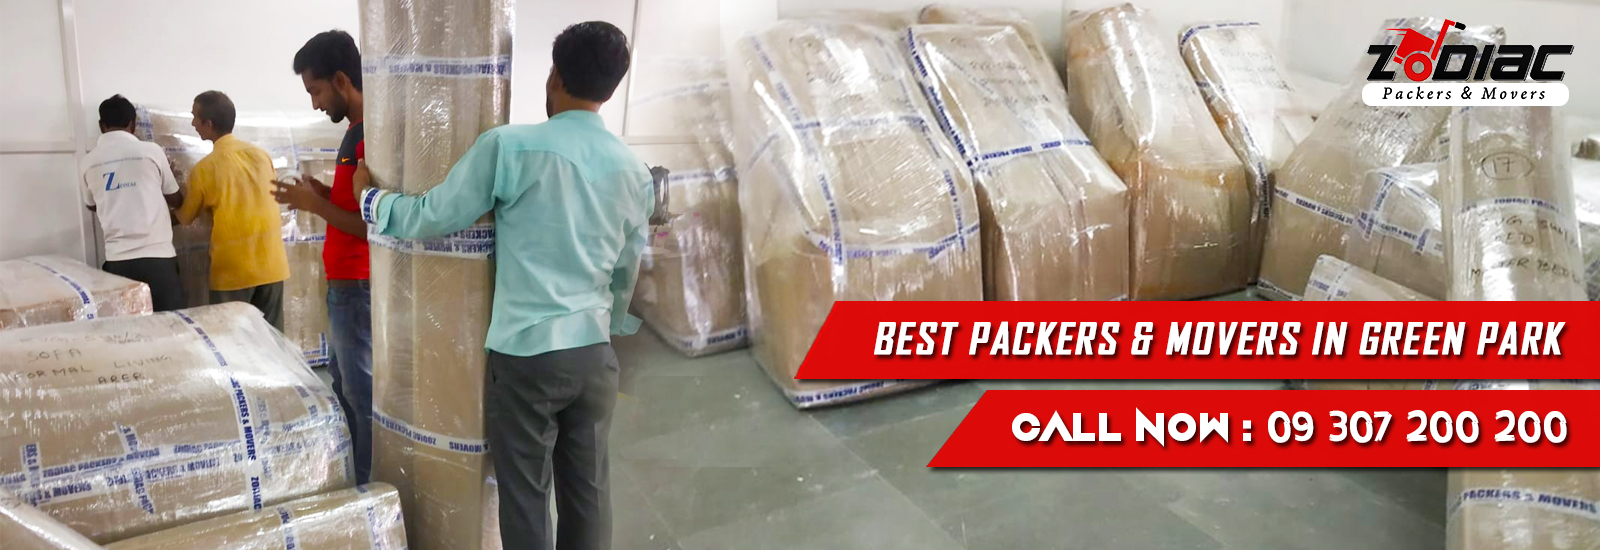 Packers and Movers in Green Park